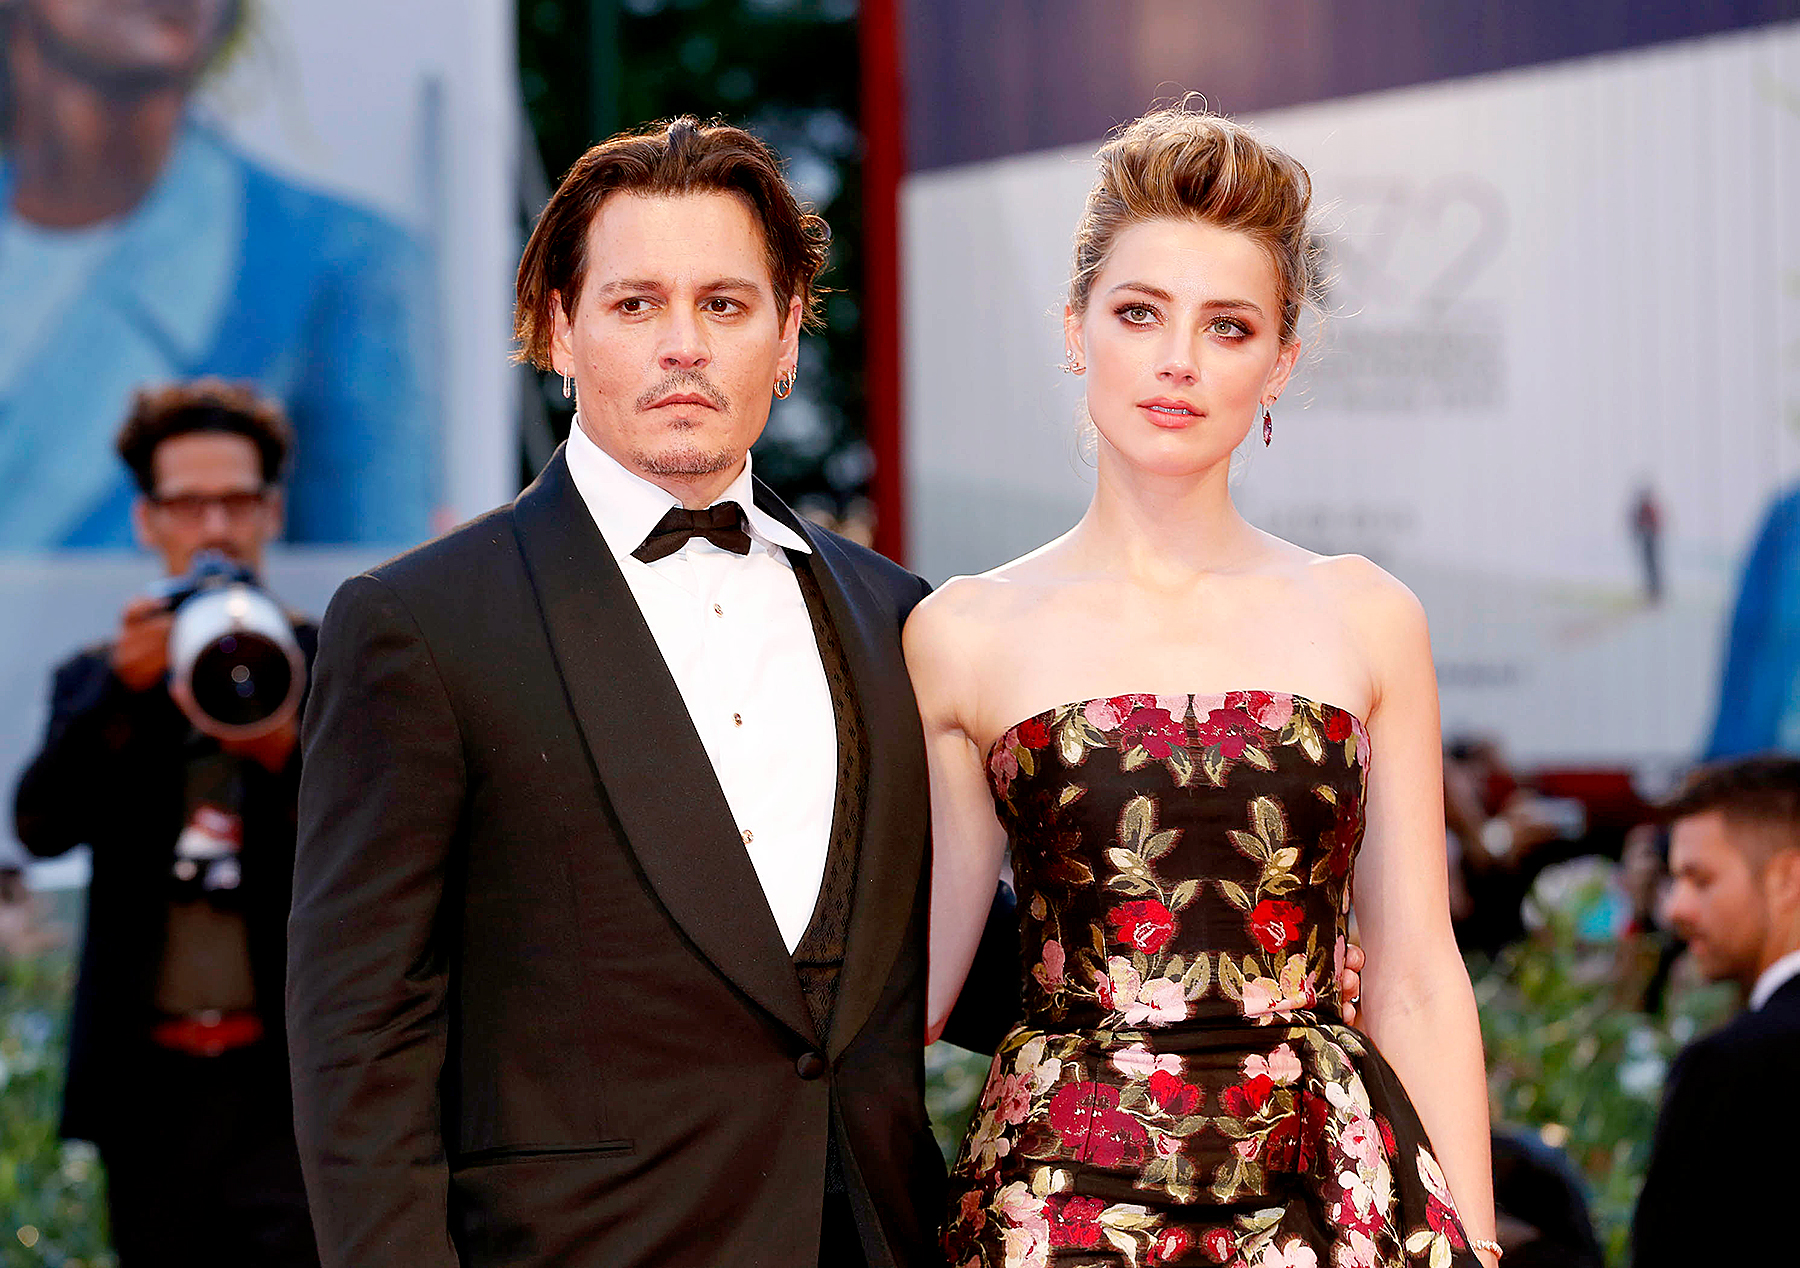 johnny-depp-claims-that-his-ex-wife-amber-heard-broke-his-middle-fingers-bones-court-documents-surface